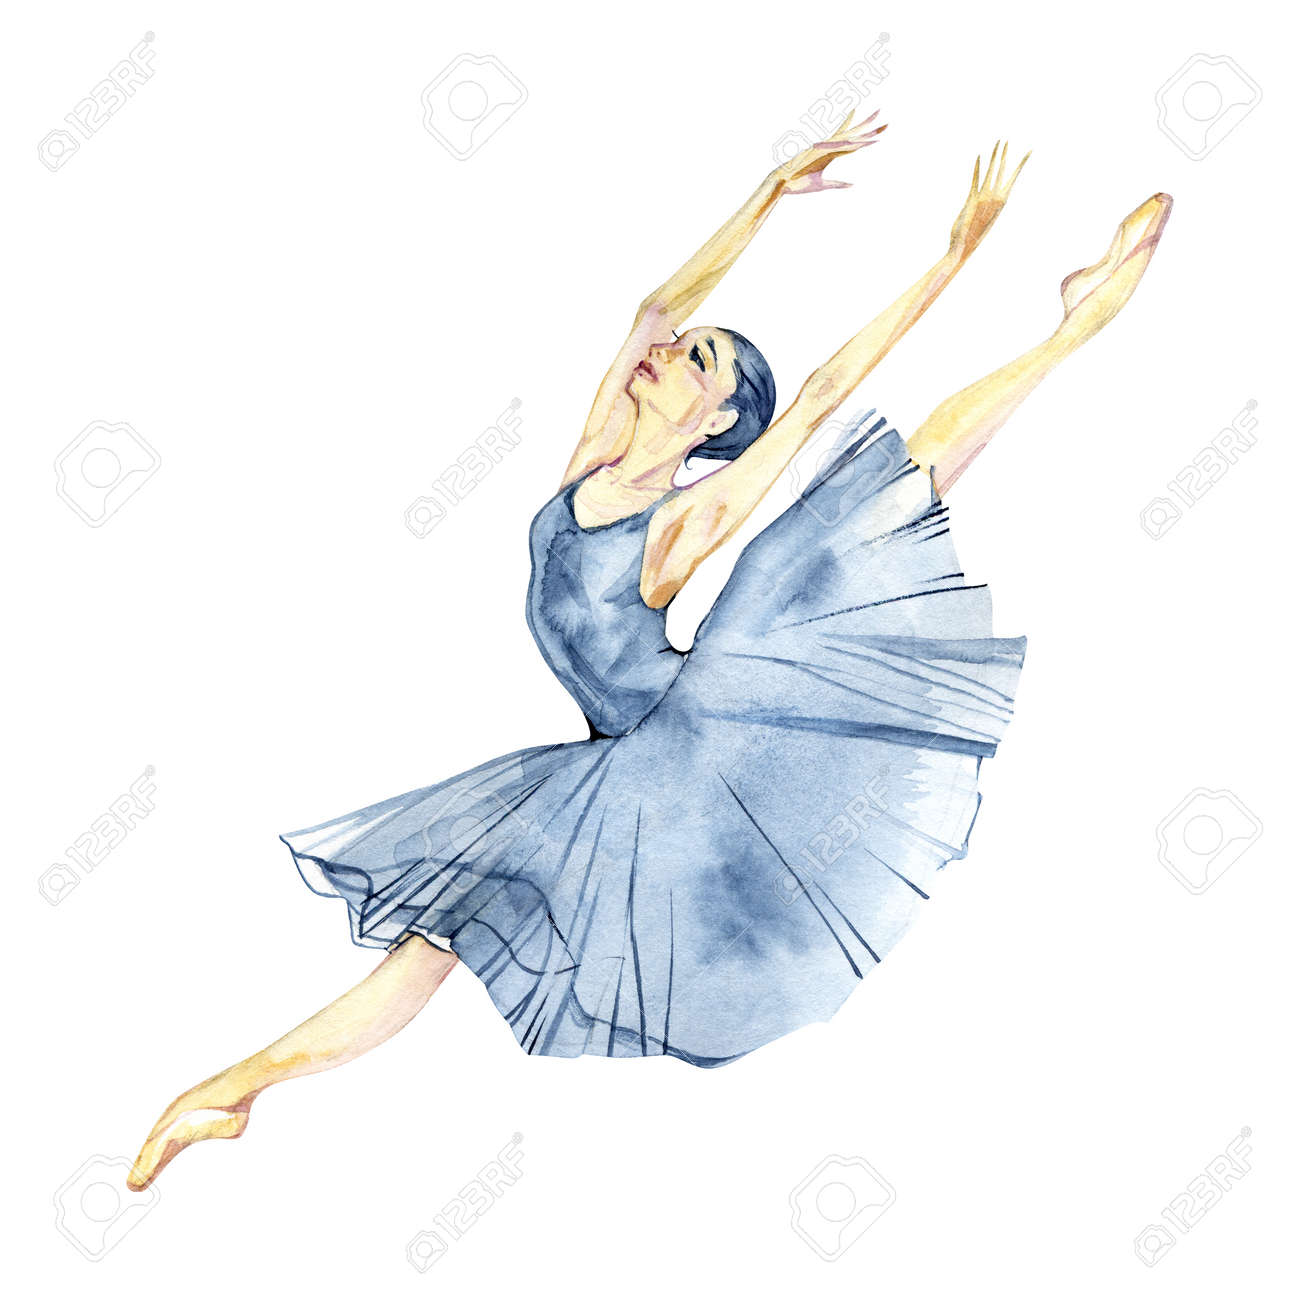 Ballerina Dancing Watercolor Painting Isolated On White Background Stock Photo Picture And Royalty Free Image Image 117357896